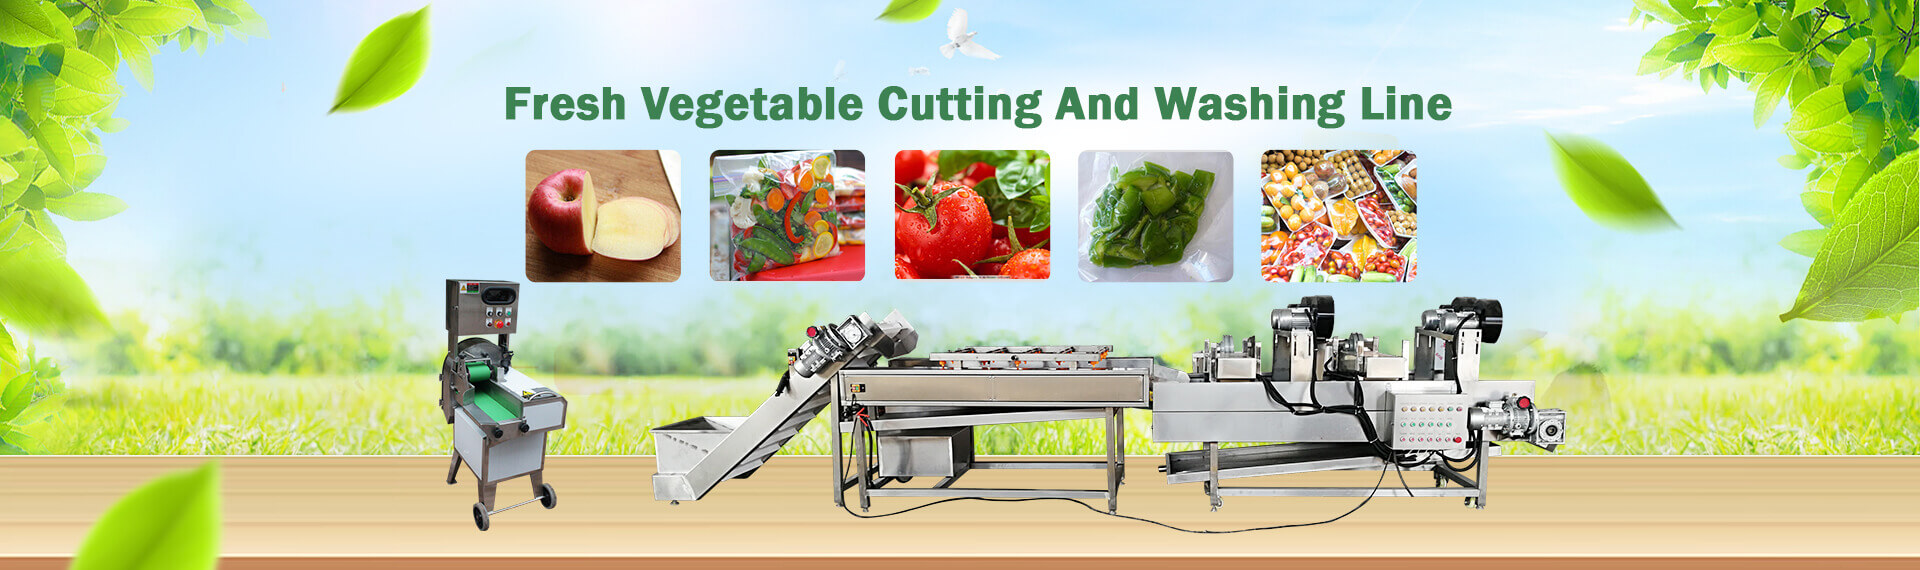 Fresh Vegetable Cutting Line